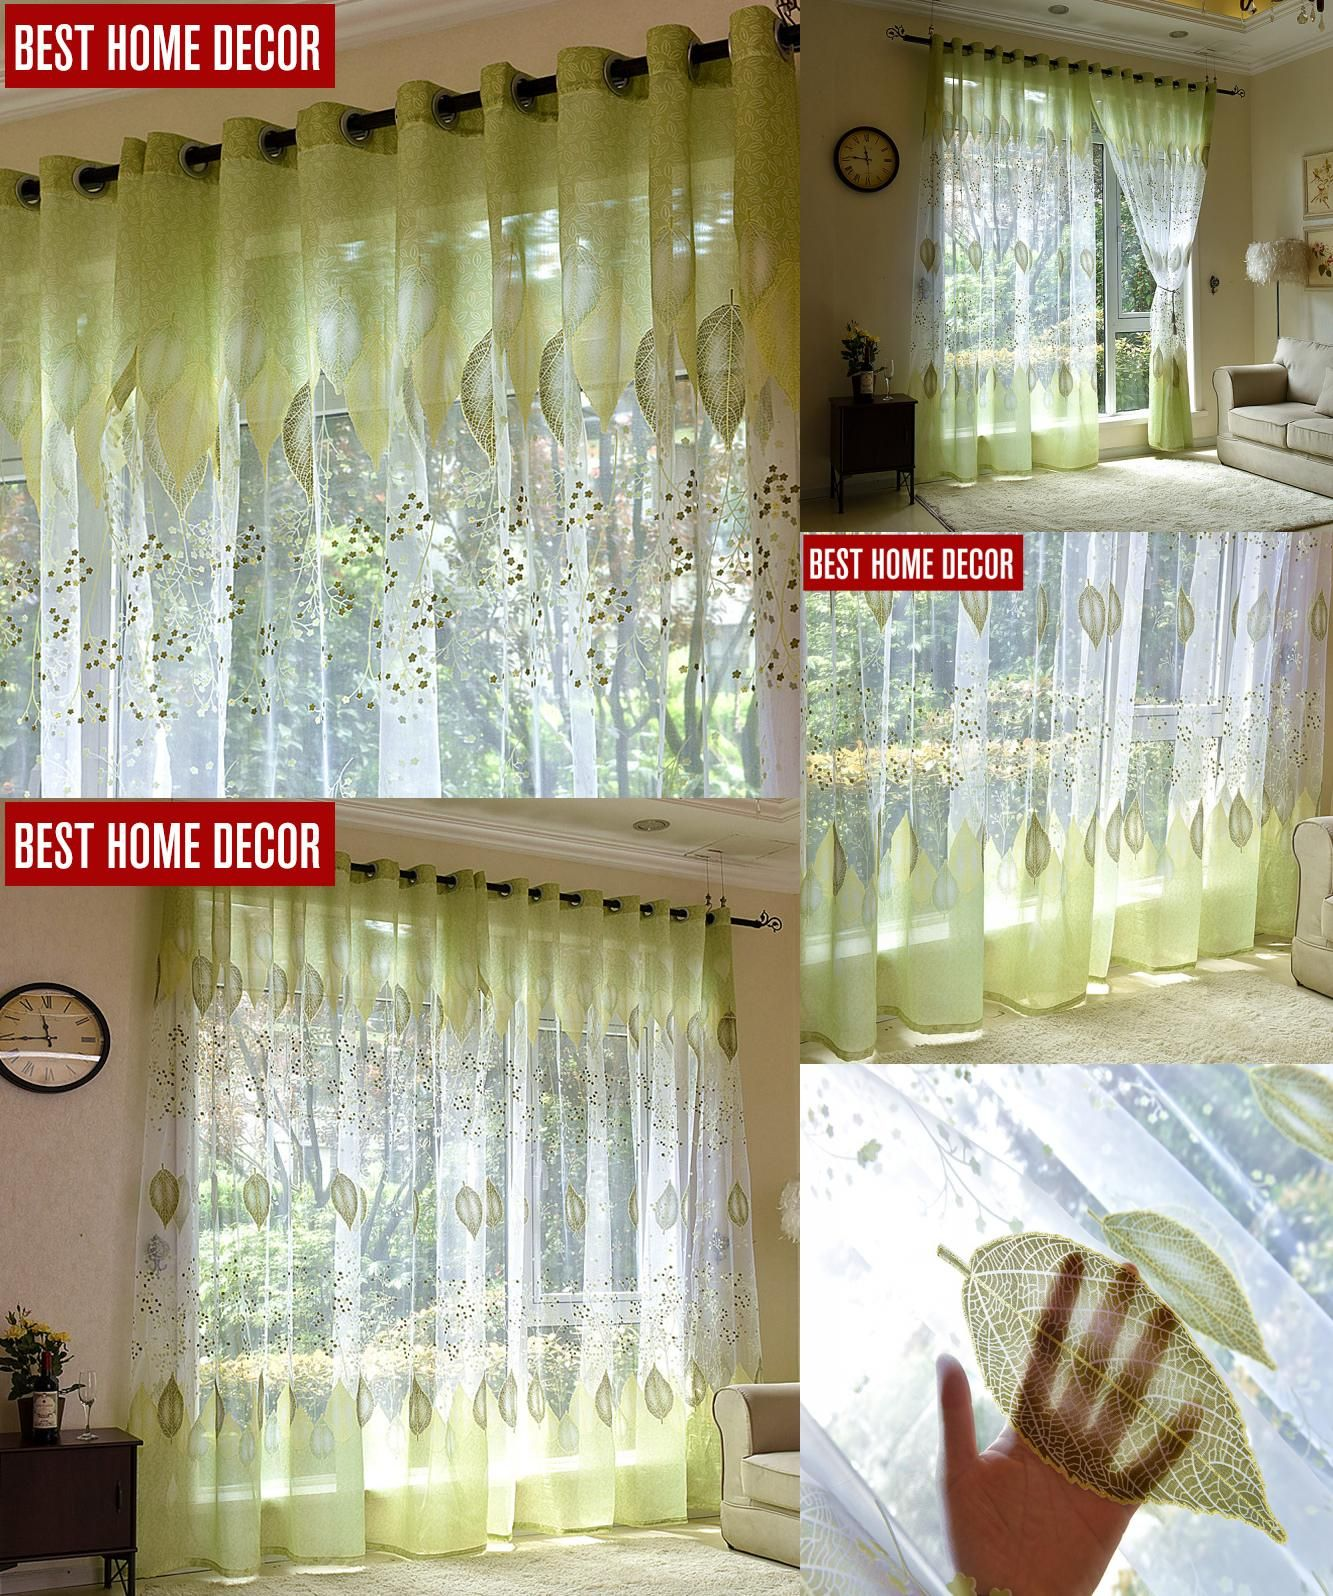 Elegant [Visit To Buy] BHD Sheer Tulle Window Curtains For Living Room The Bedroom  The Kitchen Modern Tulle Curtains Green Leaves Fabric Blinds Drapes